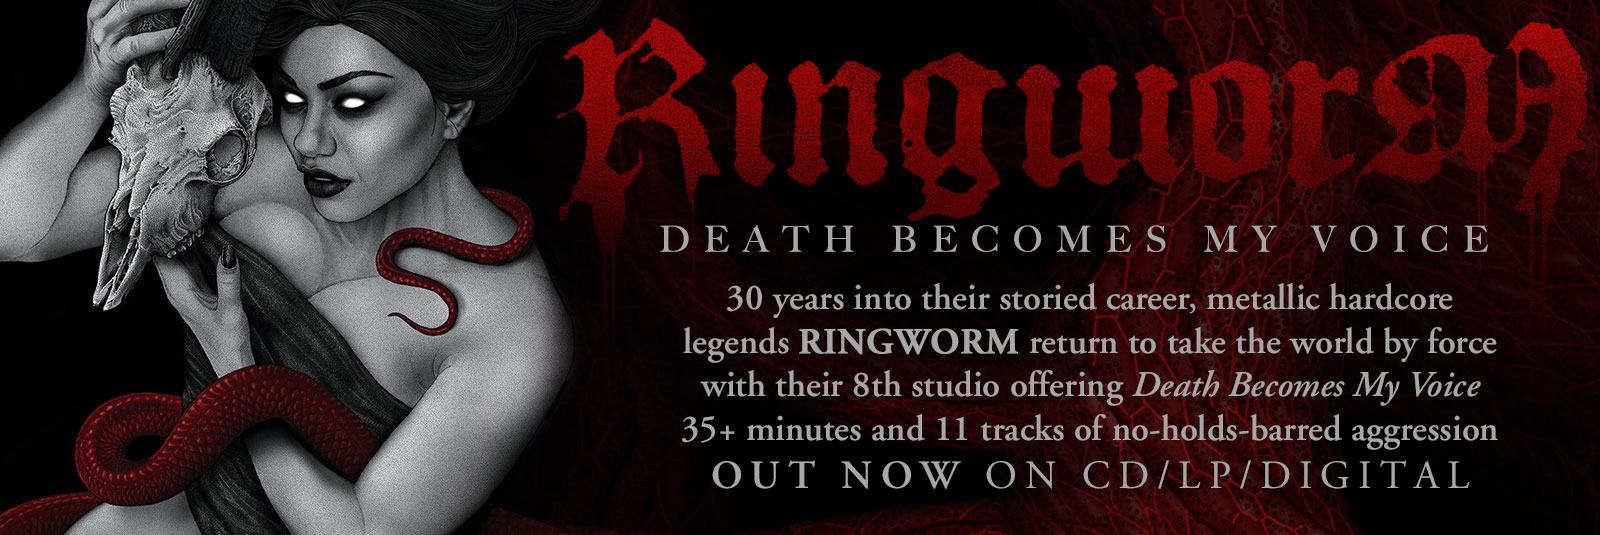 ringworm-death-becomes-my-voice